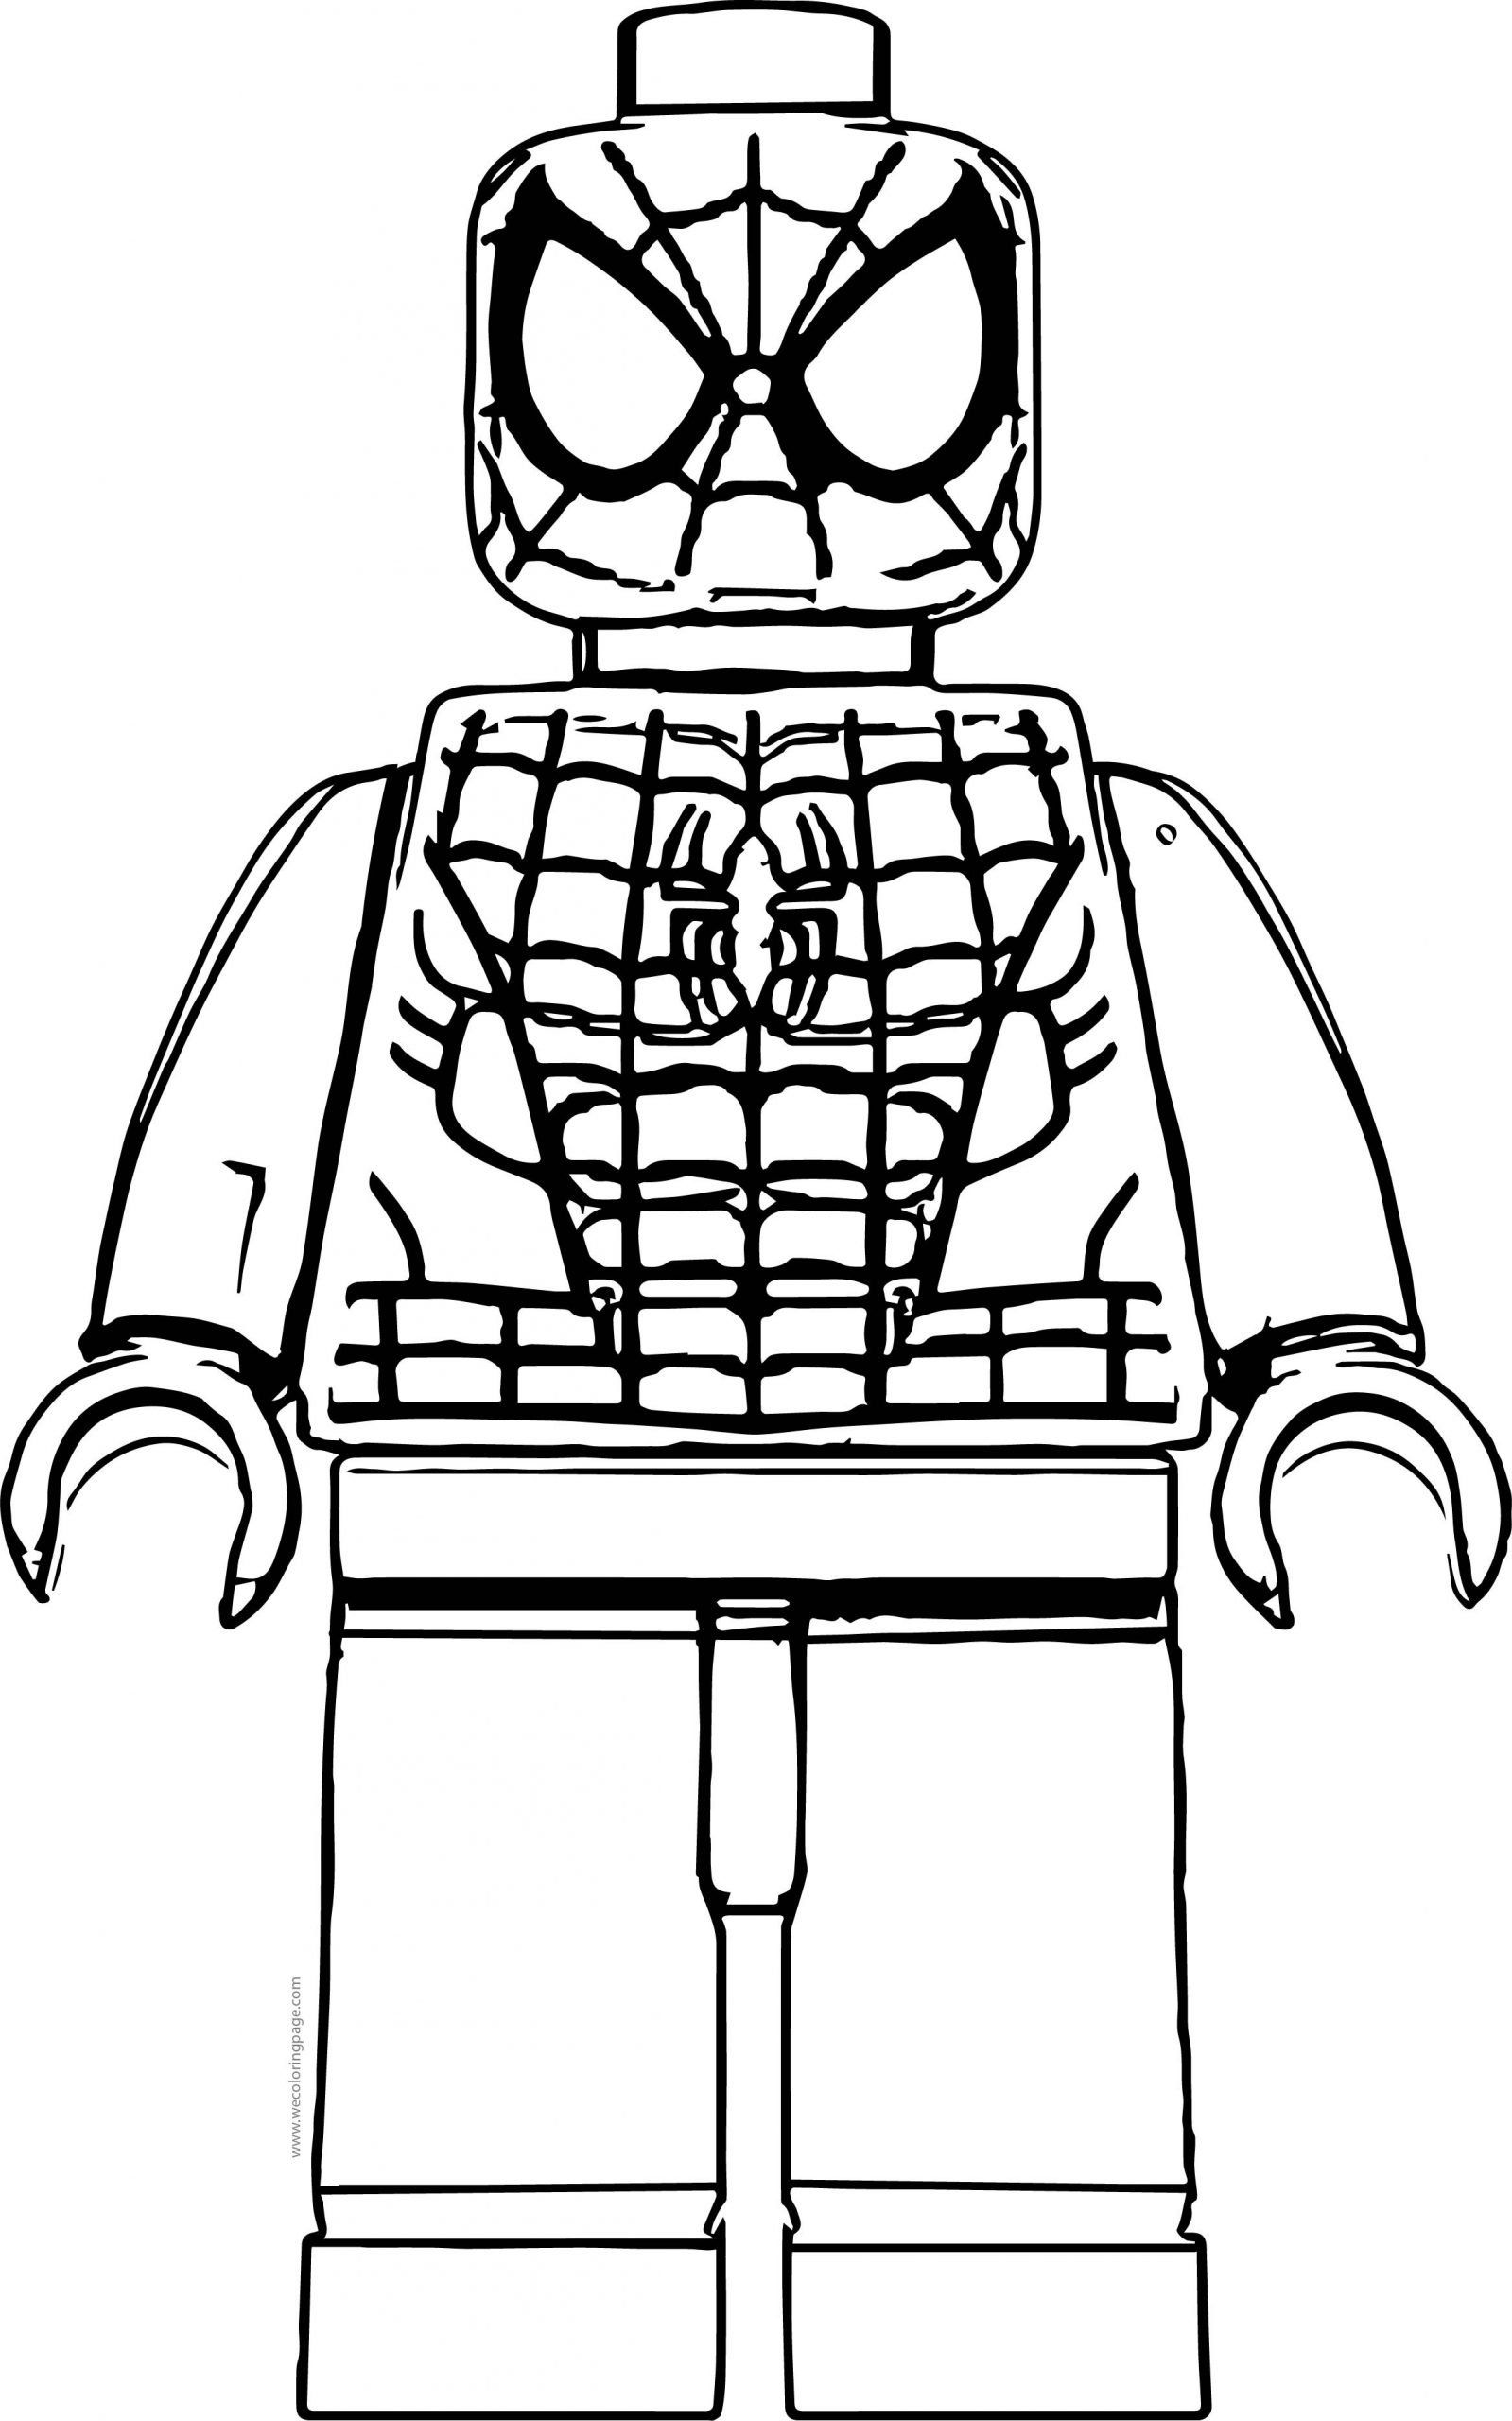 Lego Spiderman Coloring Pages Lego Spiderman Coloring Pages Coloringcks In 2020 Lego Coloring Pages Spiderman Coloring Lego Coloring